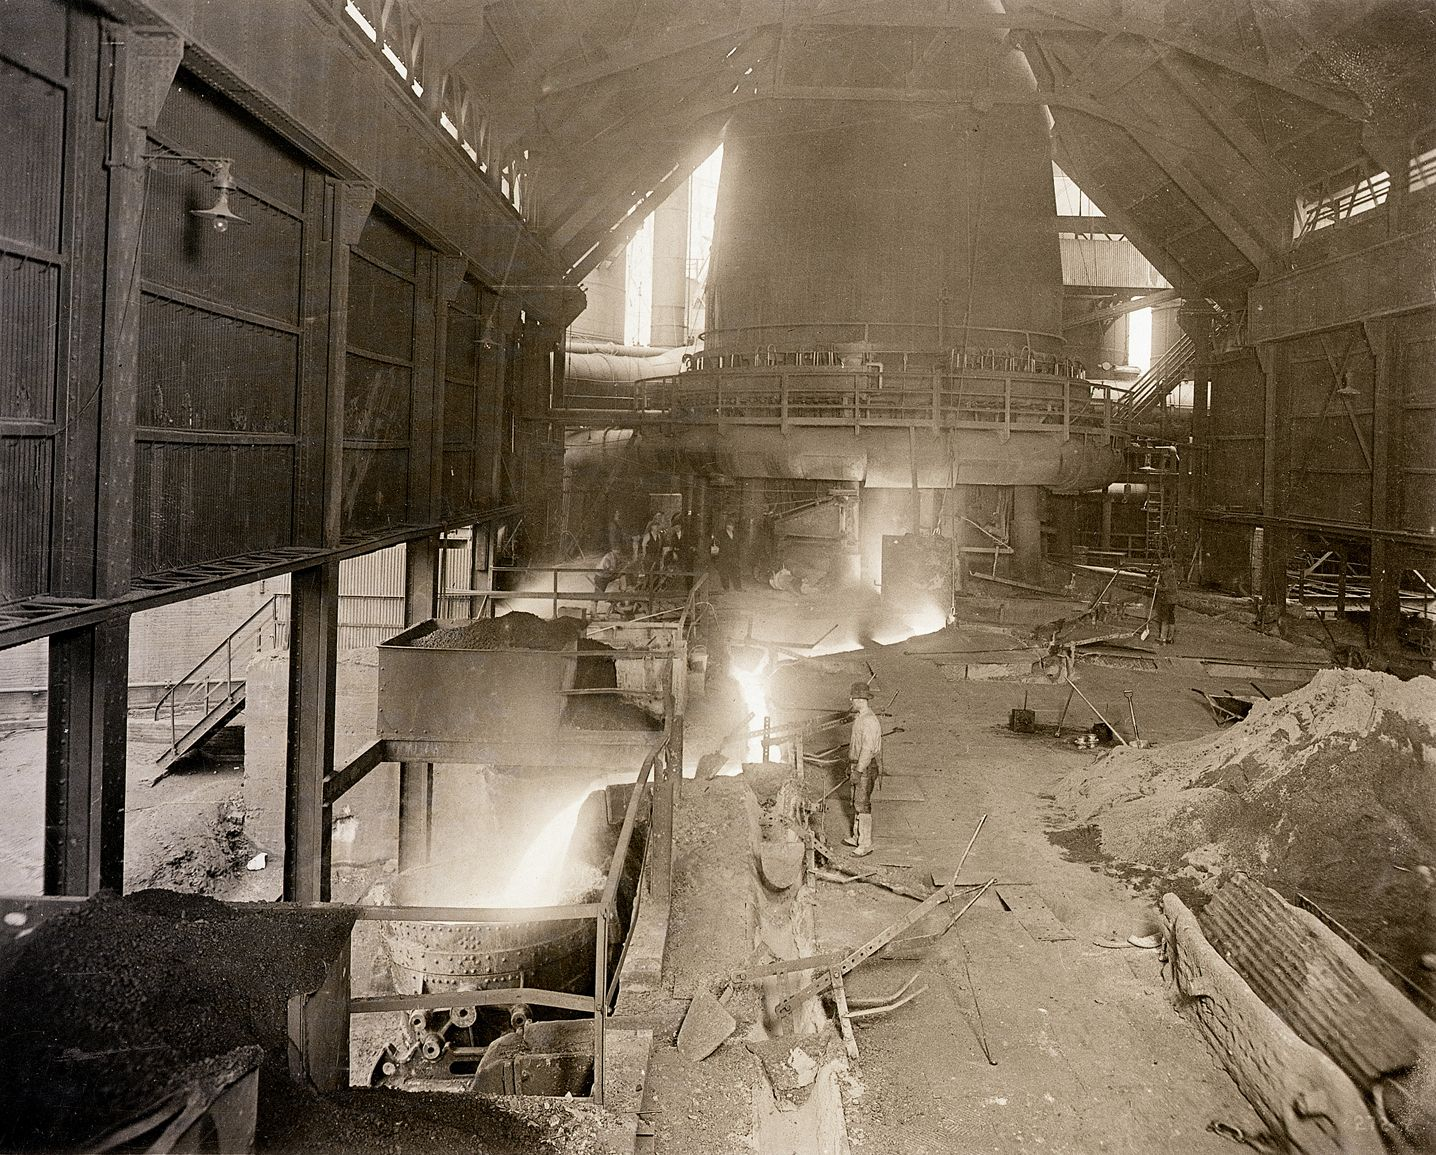 A dynamic image of the inside of Duquesne Steel and a